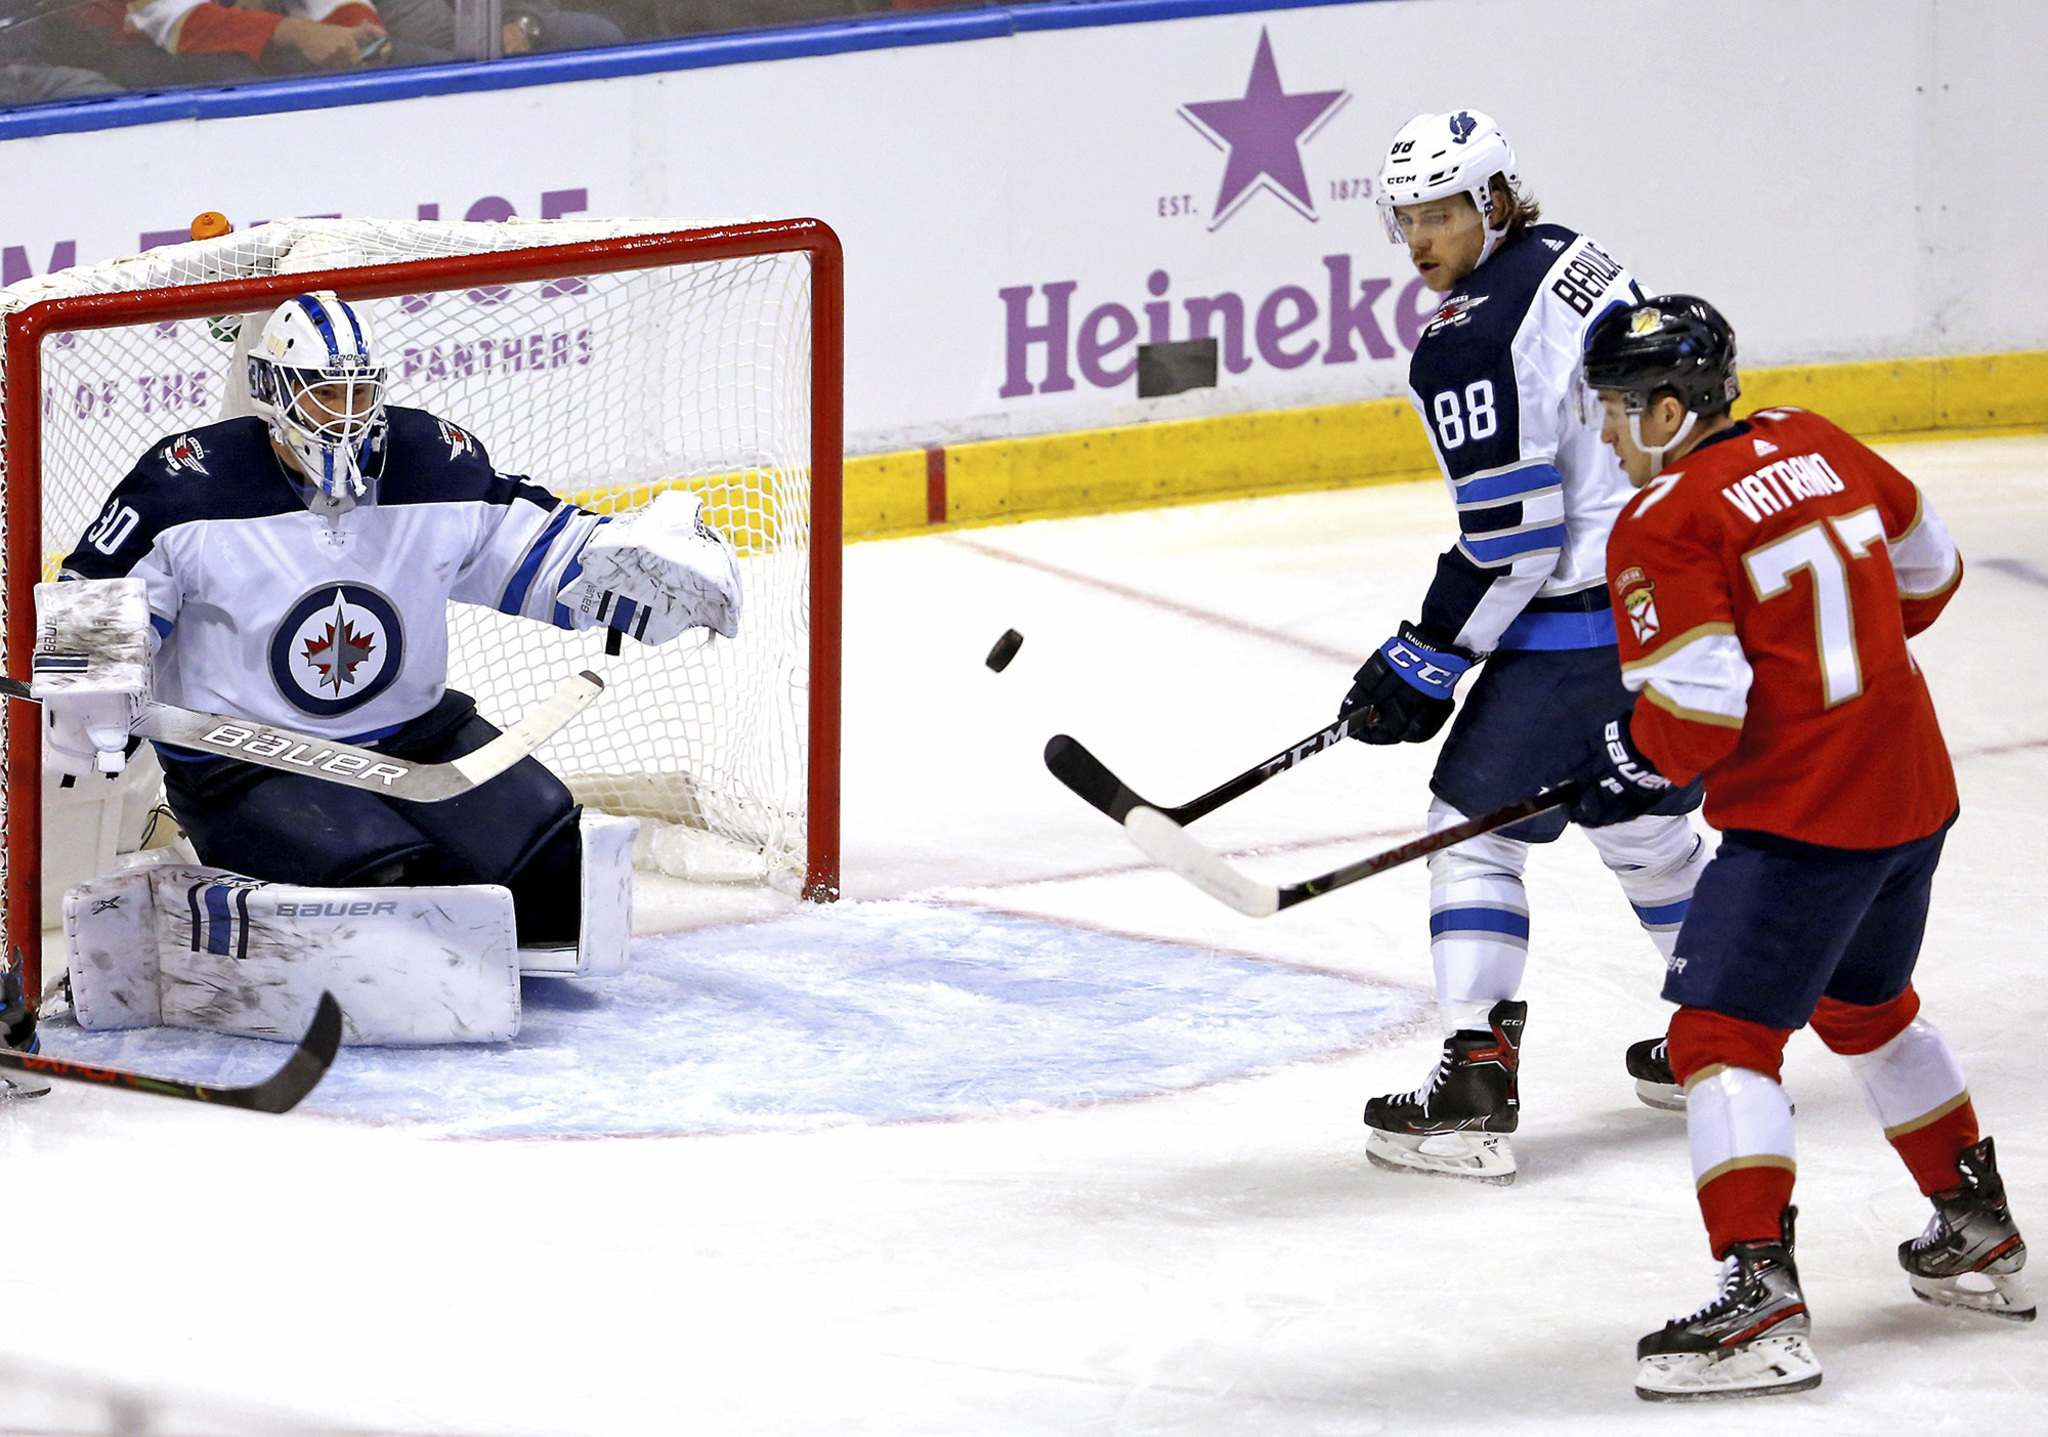 (David Santiago/Miami Herald)</p><p>Winnipeg Jets goalie Laurent Brossoit defends the net as teammate Nathan Beaulieu goes for the puck against the Florida Panthers' Frank Vatrano during the first period at the BB&T Center in Sunrise, Fla., on Thursday.</p>